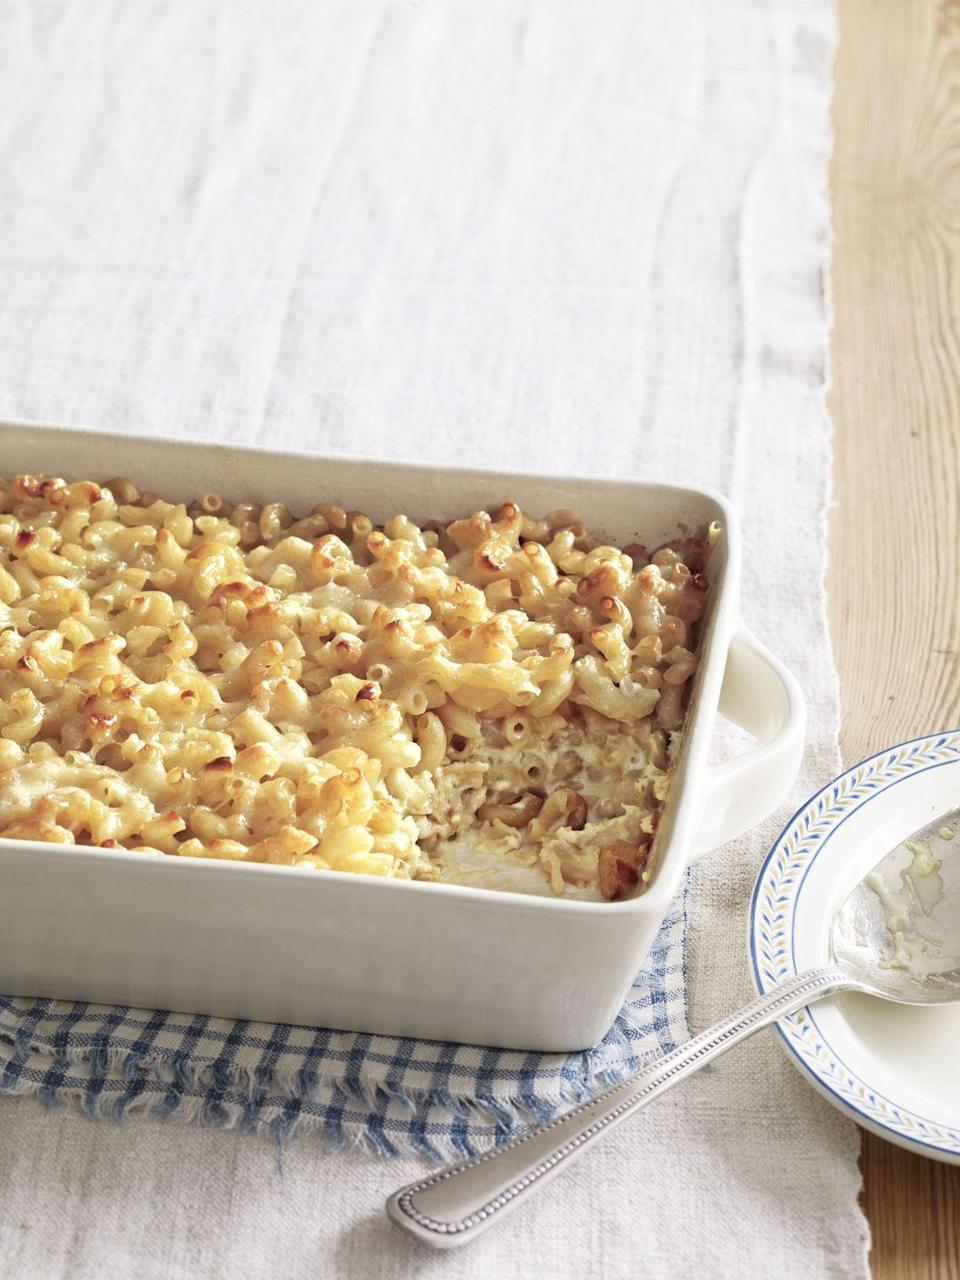 """<p>Update this traditional dish with a slightly sweet, slightly salty cheese. Even better: This version requires just five ingredients and 10 minutes to prep.</p><p><strong><a href=""""https://www.countryliving.com/food-drinks/recipes/a3690/macaroni-gruyere-cheese-recipe-clx0311/"""" rel=""""nofollow noopener"""" target=""""_blank"""" data-ylk=""""slk:Get the recipe."""" class=""""link rapid-noclick-resp"""">Get the recipe.</a></strong></p>"""